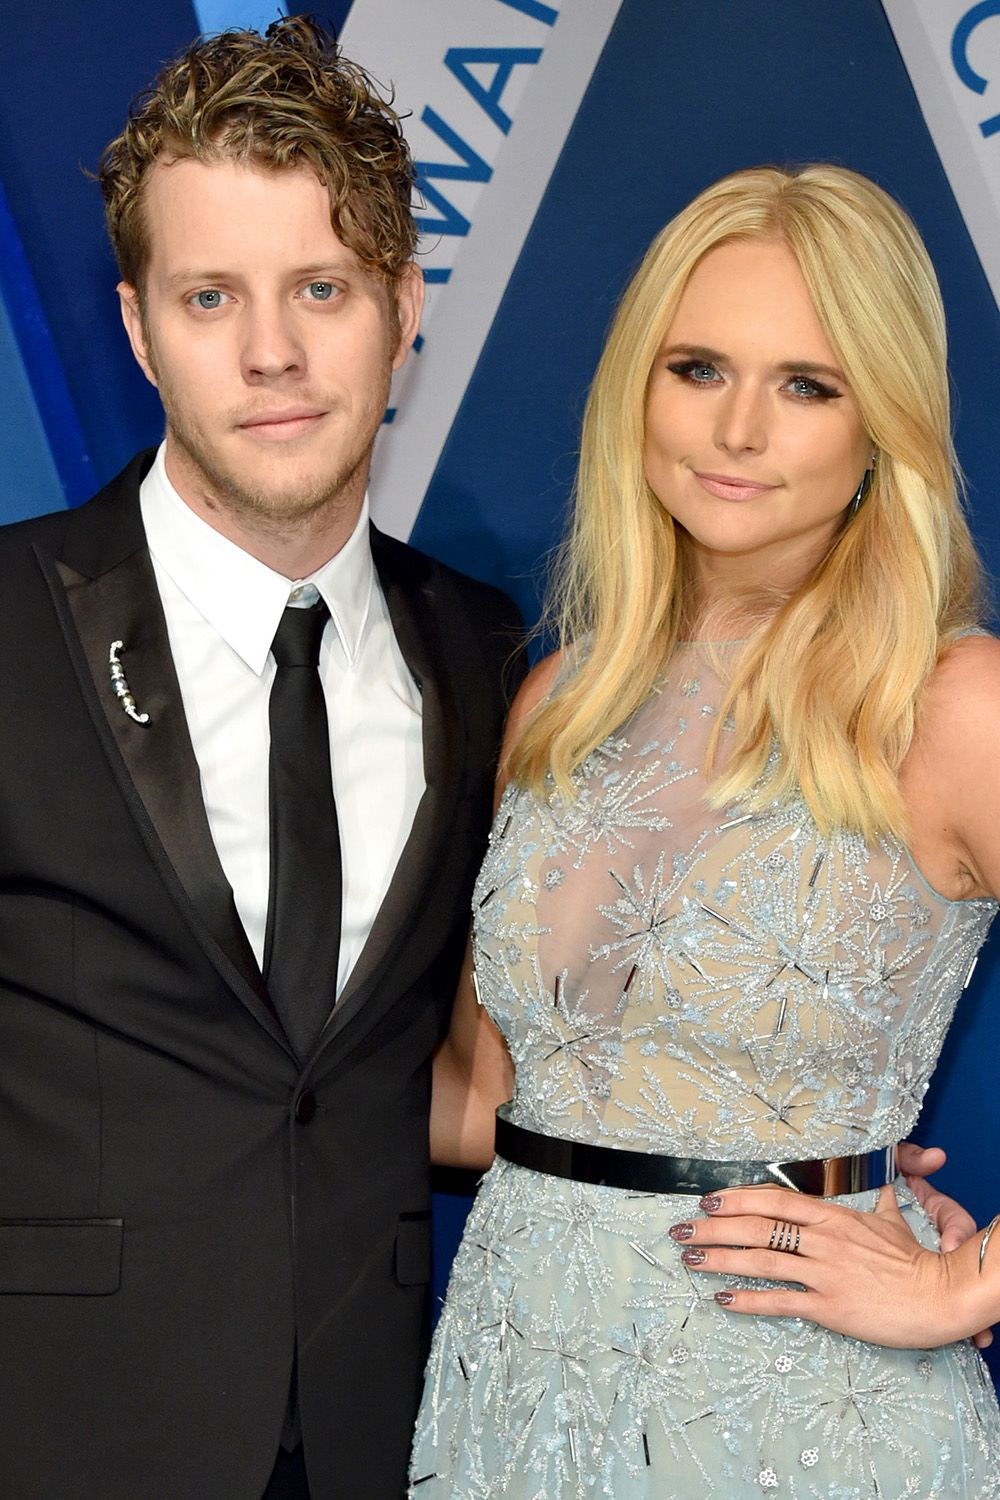 Anderson East and Miranda Lambert